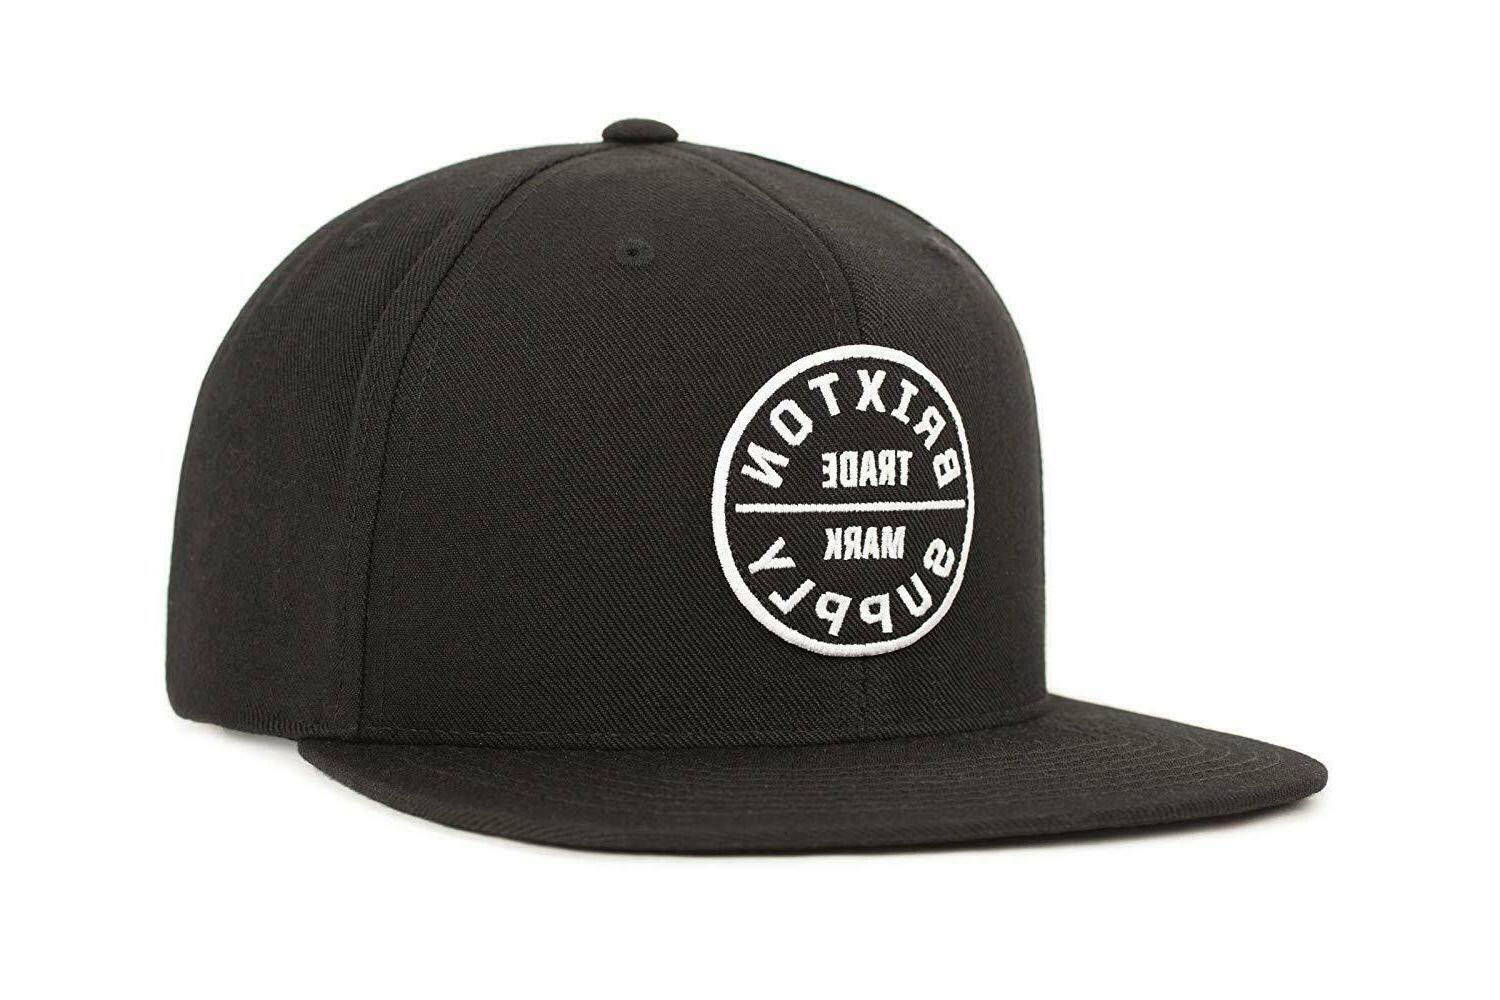 Brixton Oath Iii Medium Hat